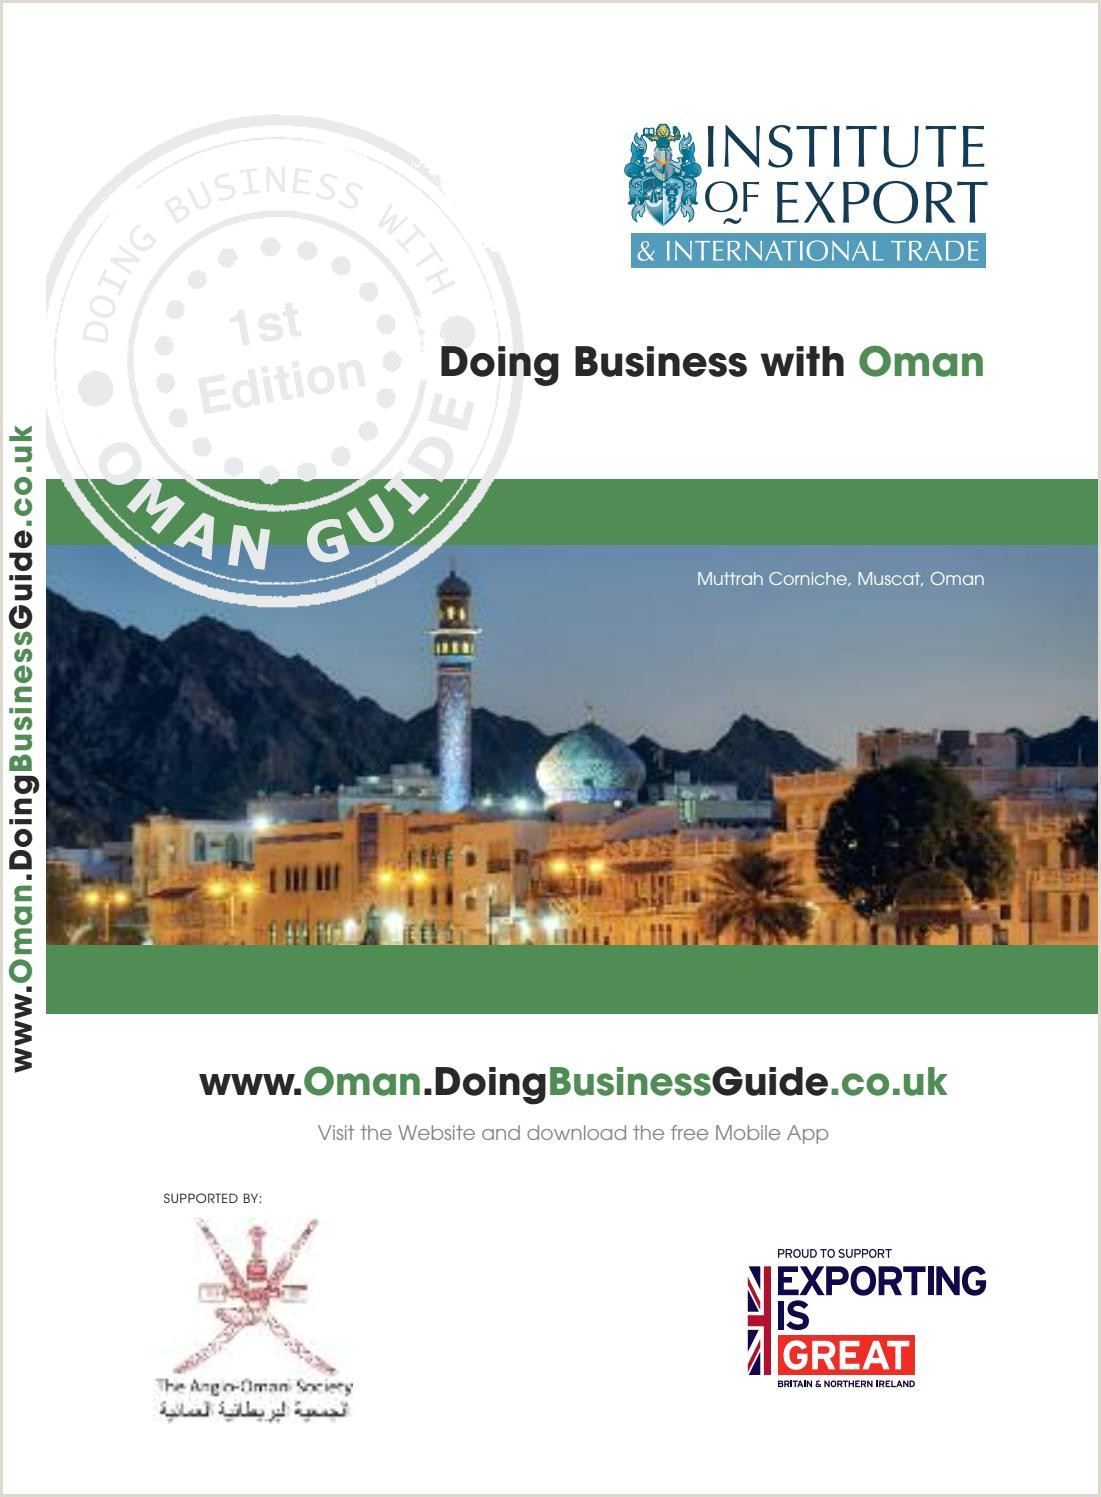 Best Business Cards Online Personal Trainer Doing Business With Oman Guide By Doing Business Guides Issuu